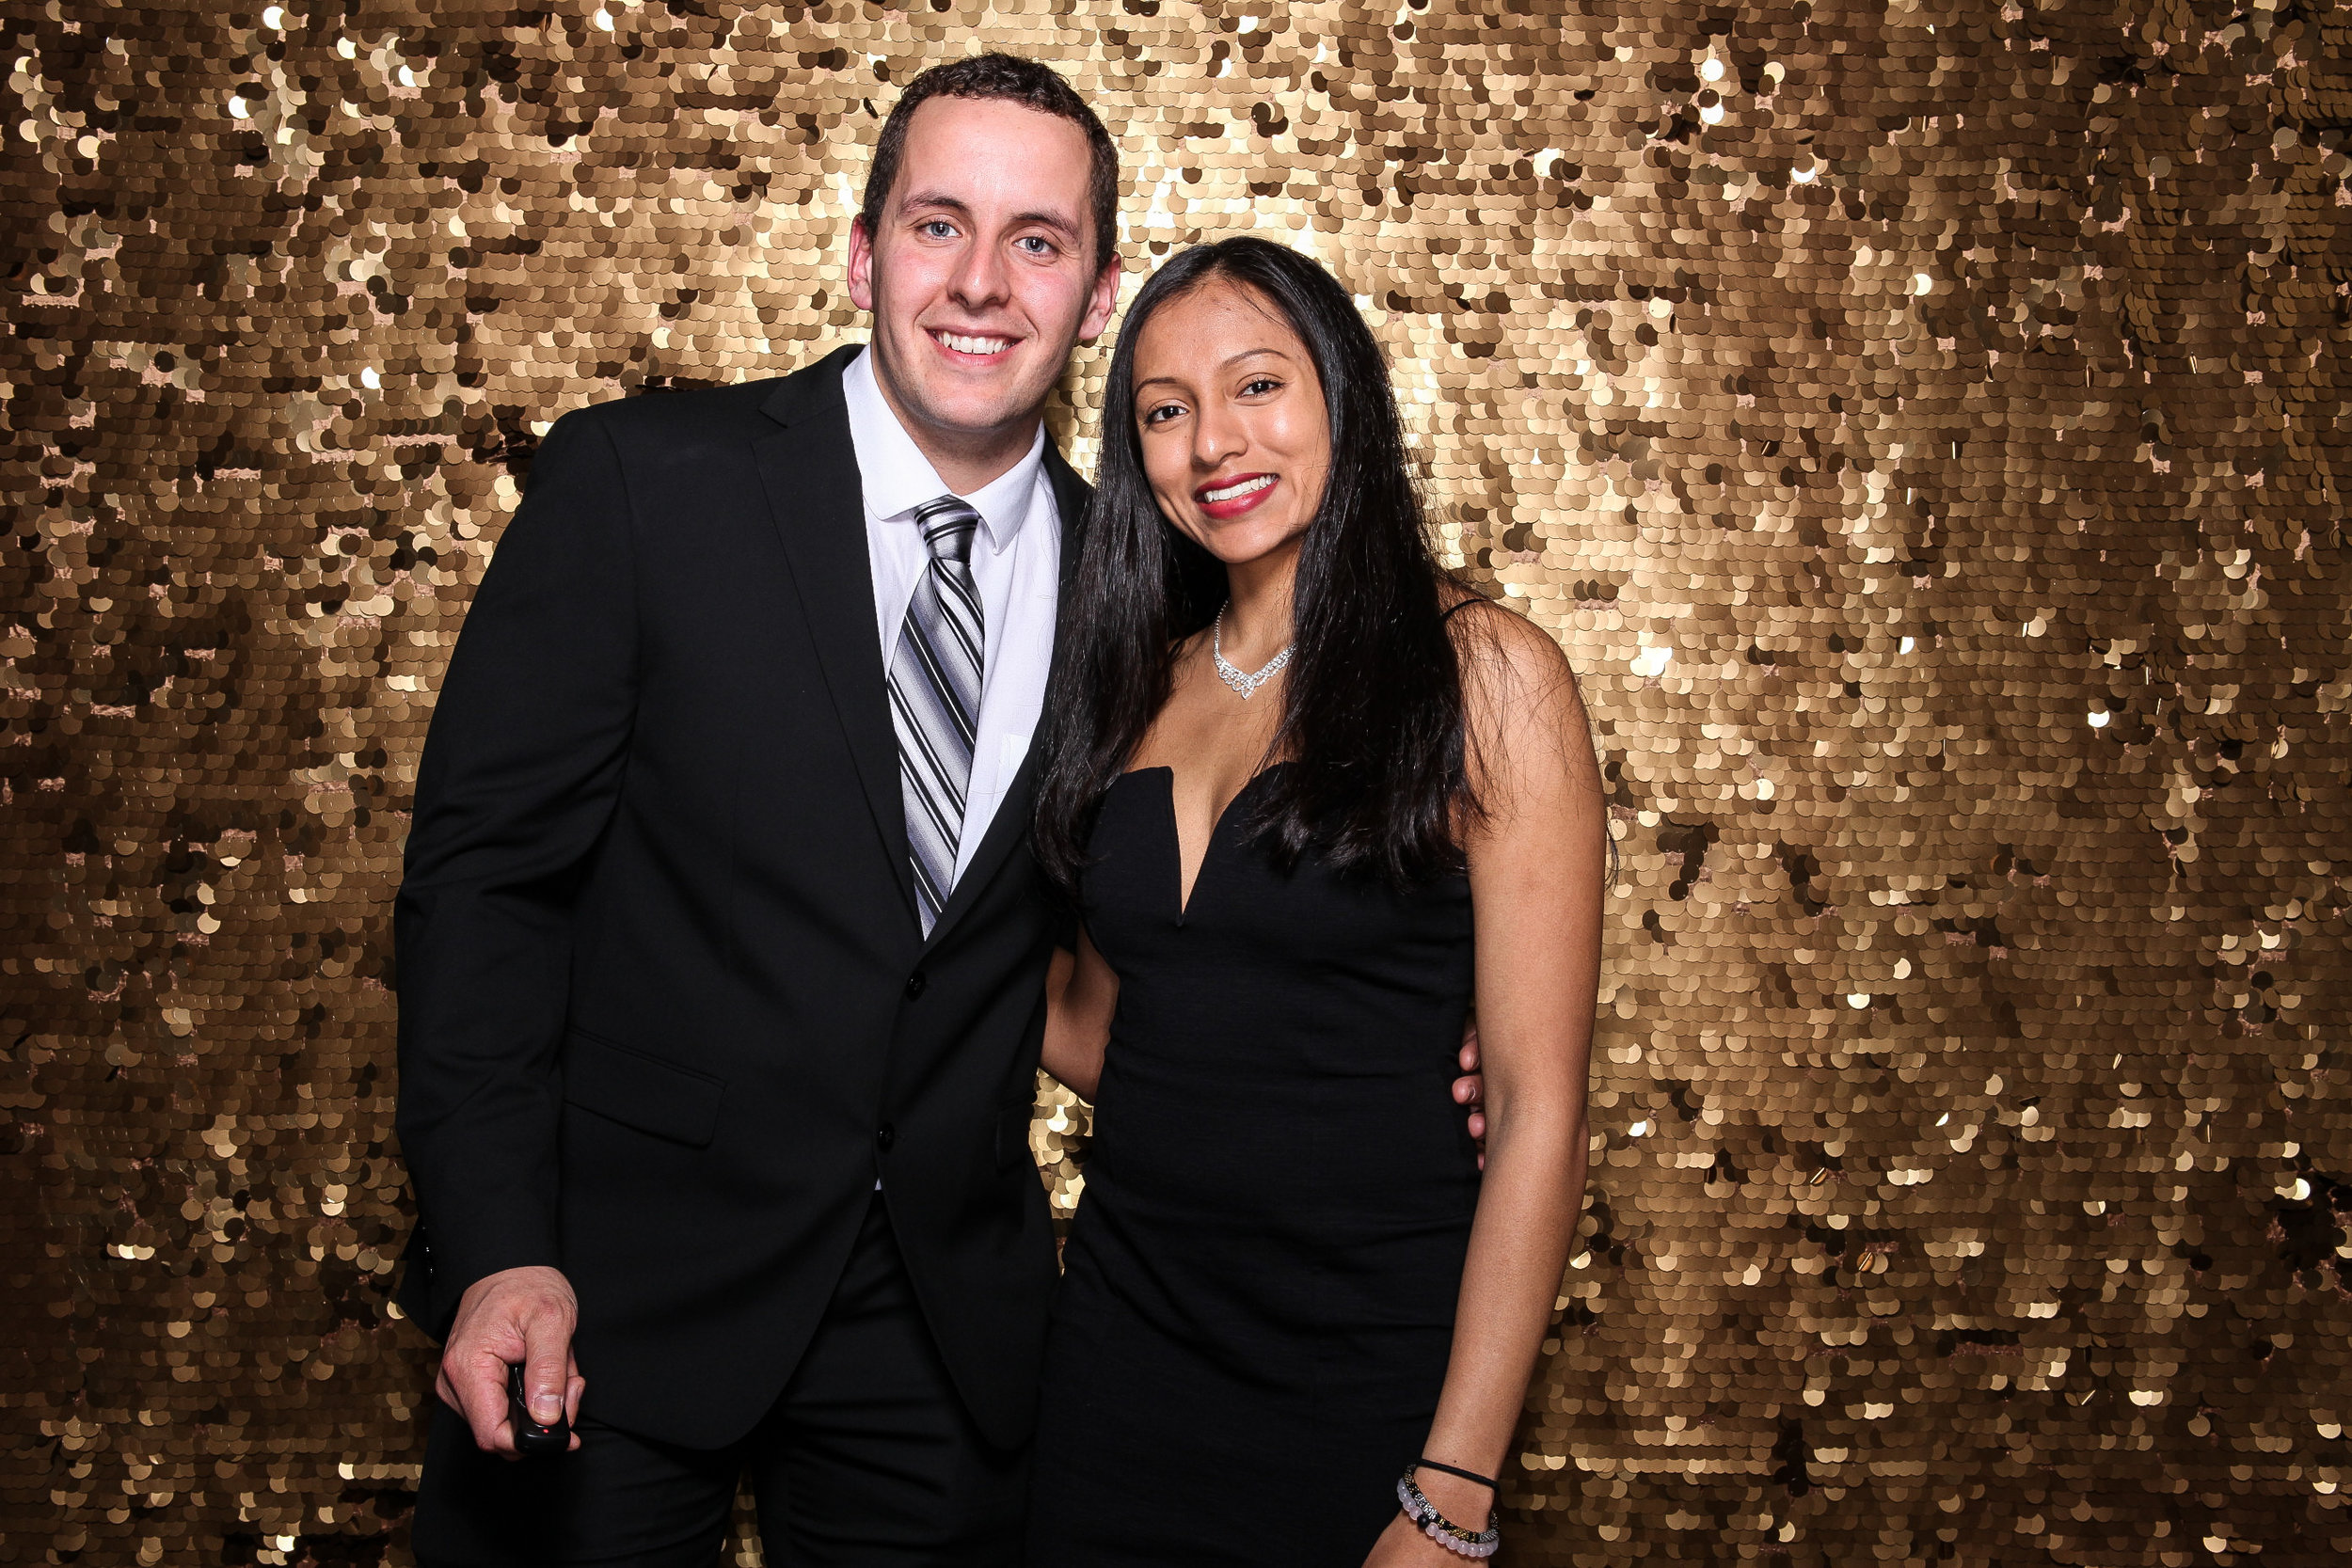 20190503_Adelphi_Senior_Formal-182.jpg